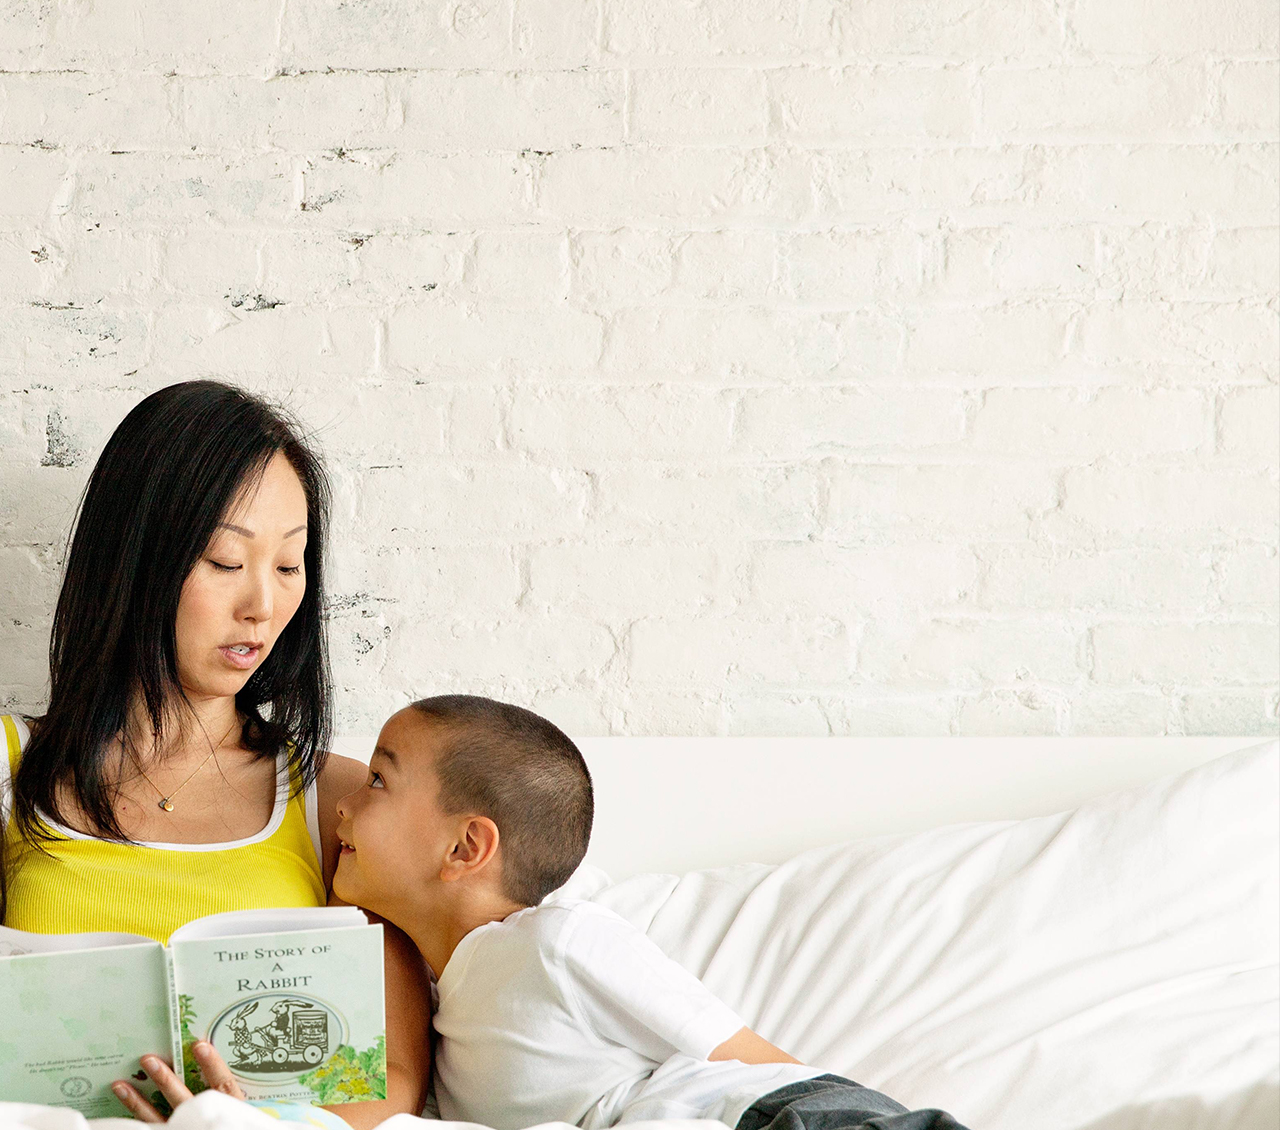 a woman reads to her child